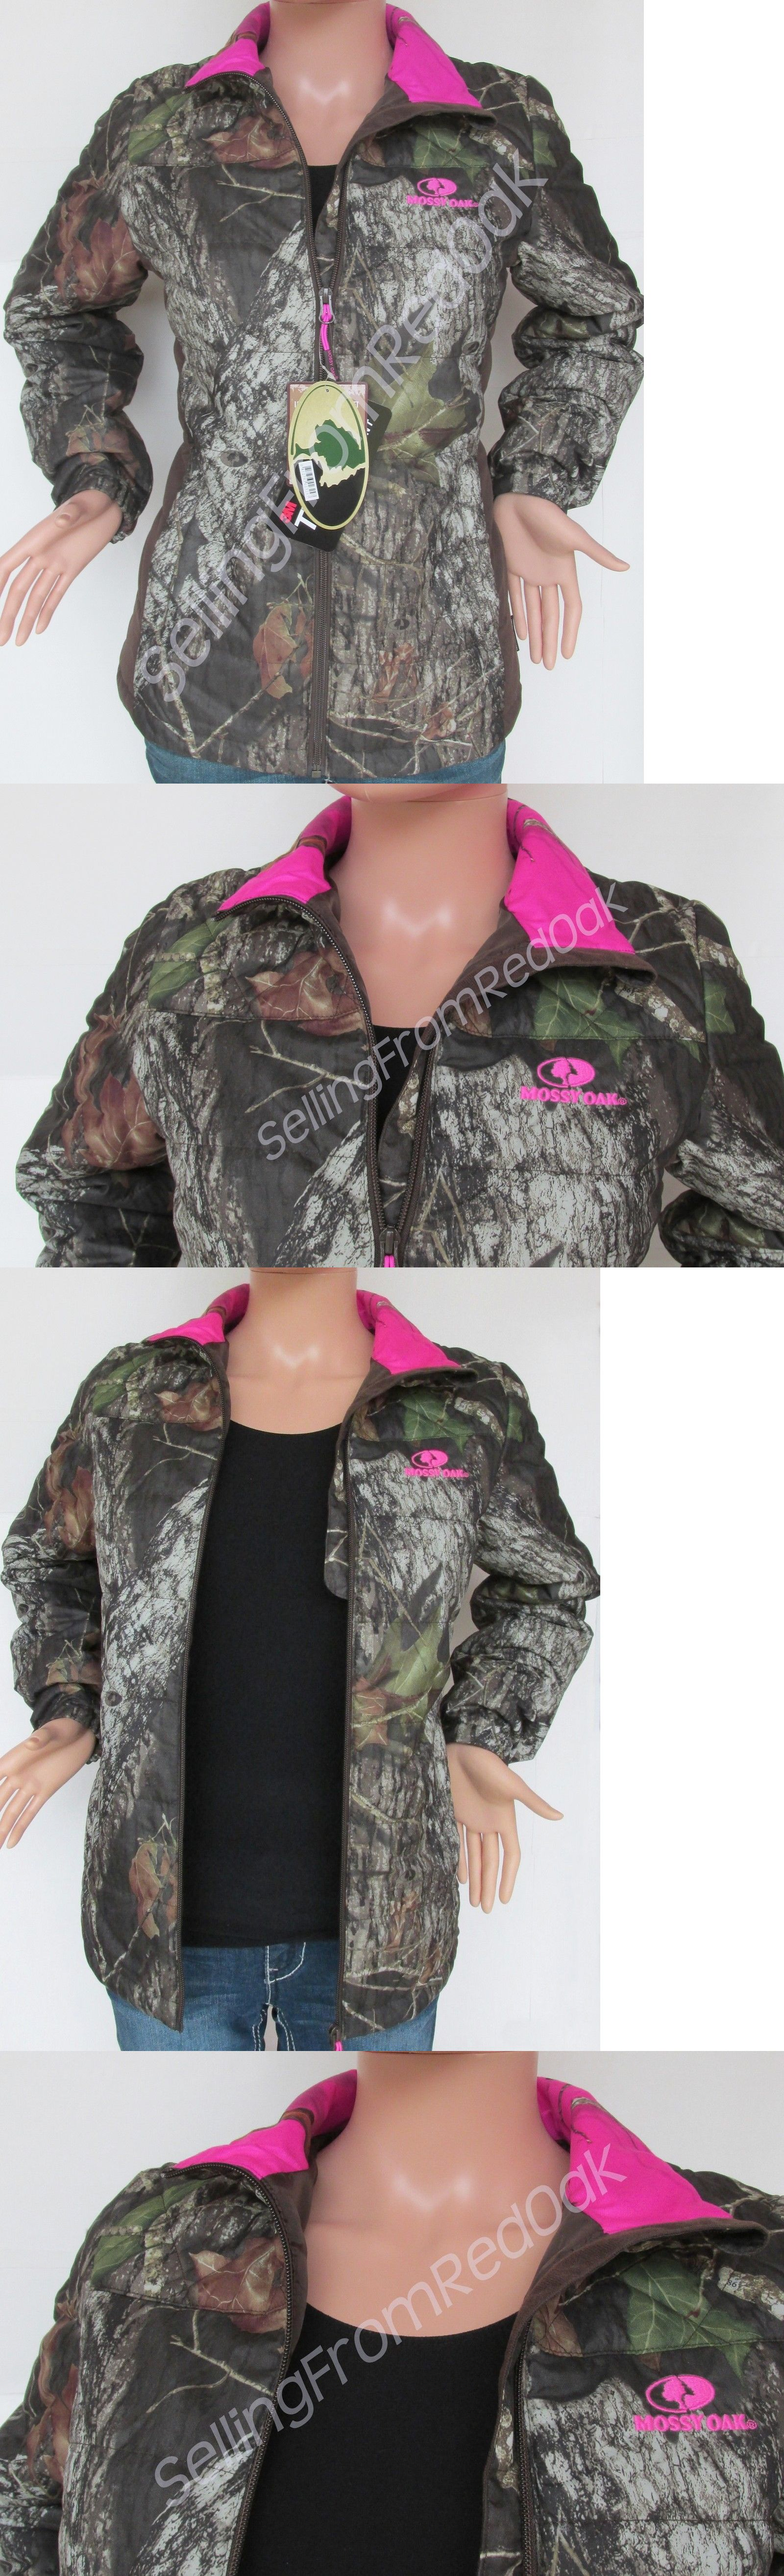 9a3a0df5b05b3 Coats and Jackets 177868: Womens Mossy Oak Camo Hot Pink Camouflage Camp  Jacket Winter Coat